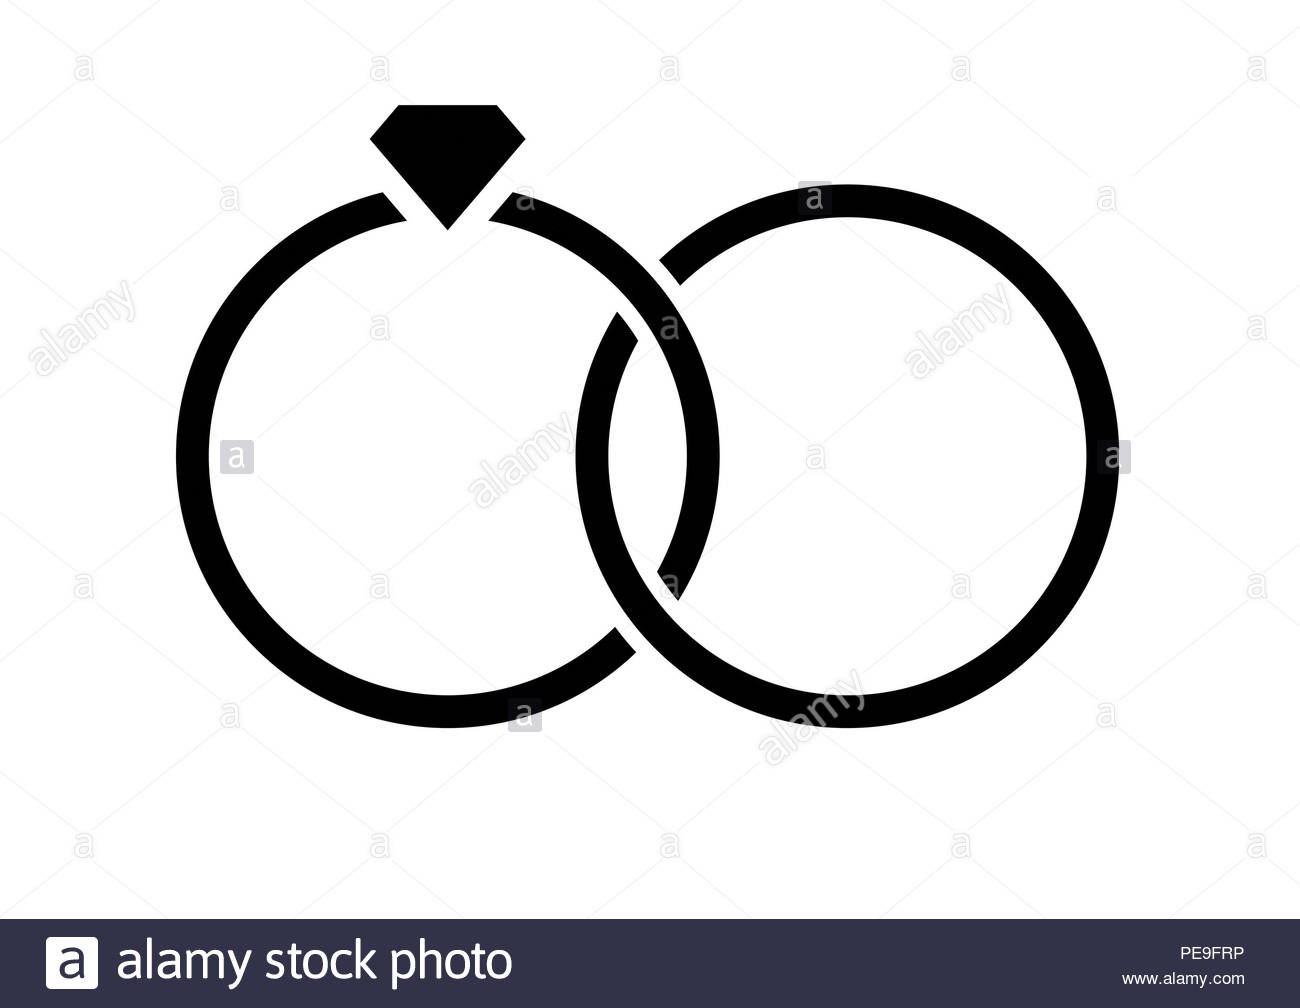 isolated vector engagement, wedding rings icon - Stock Image